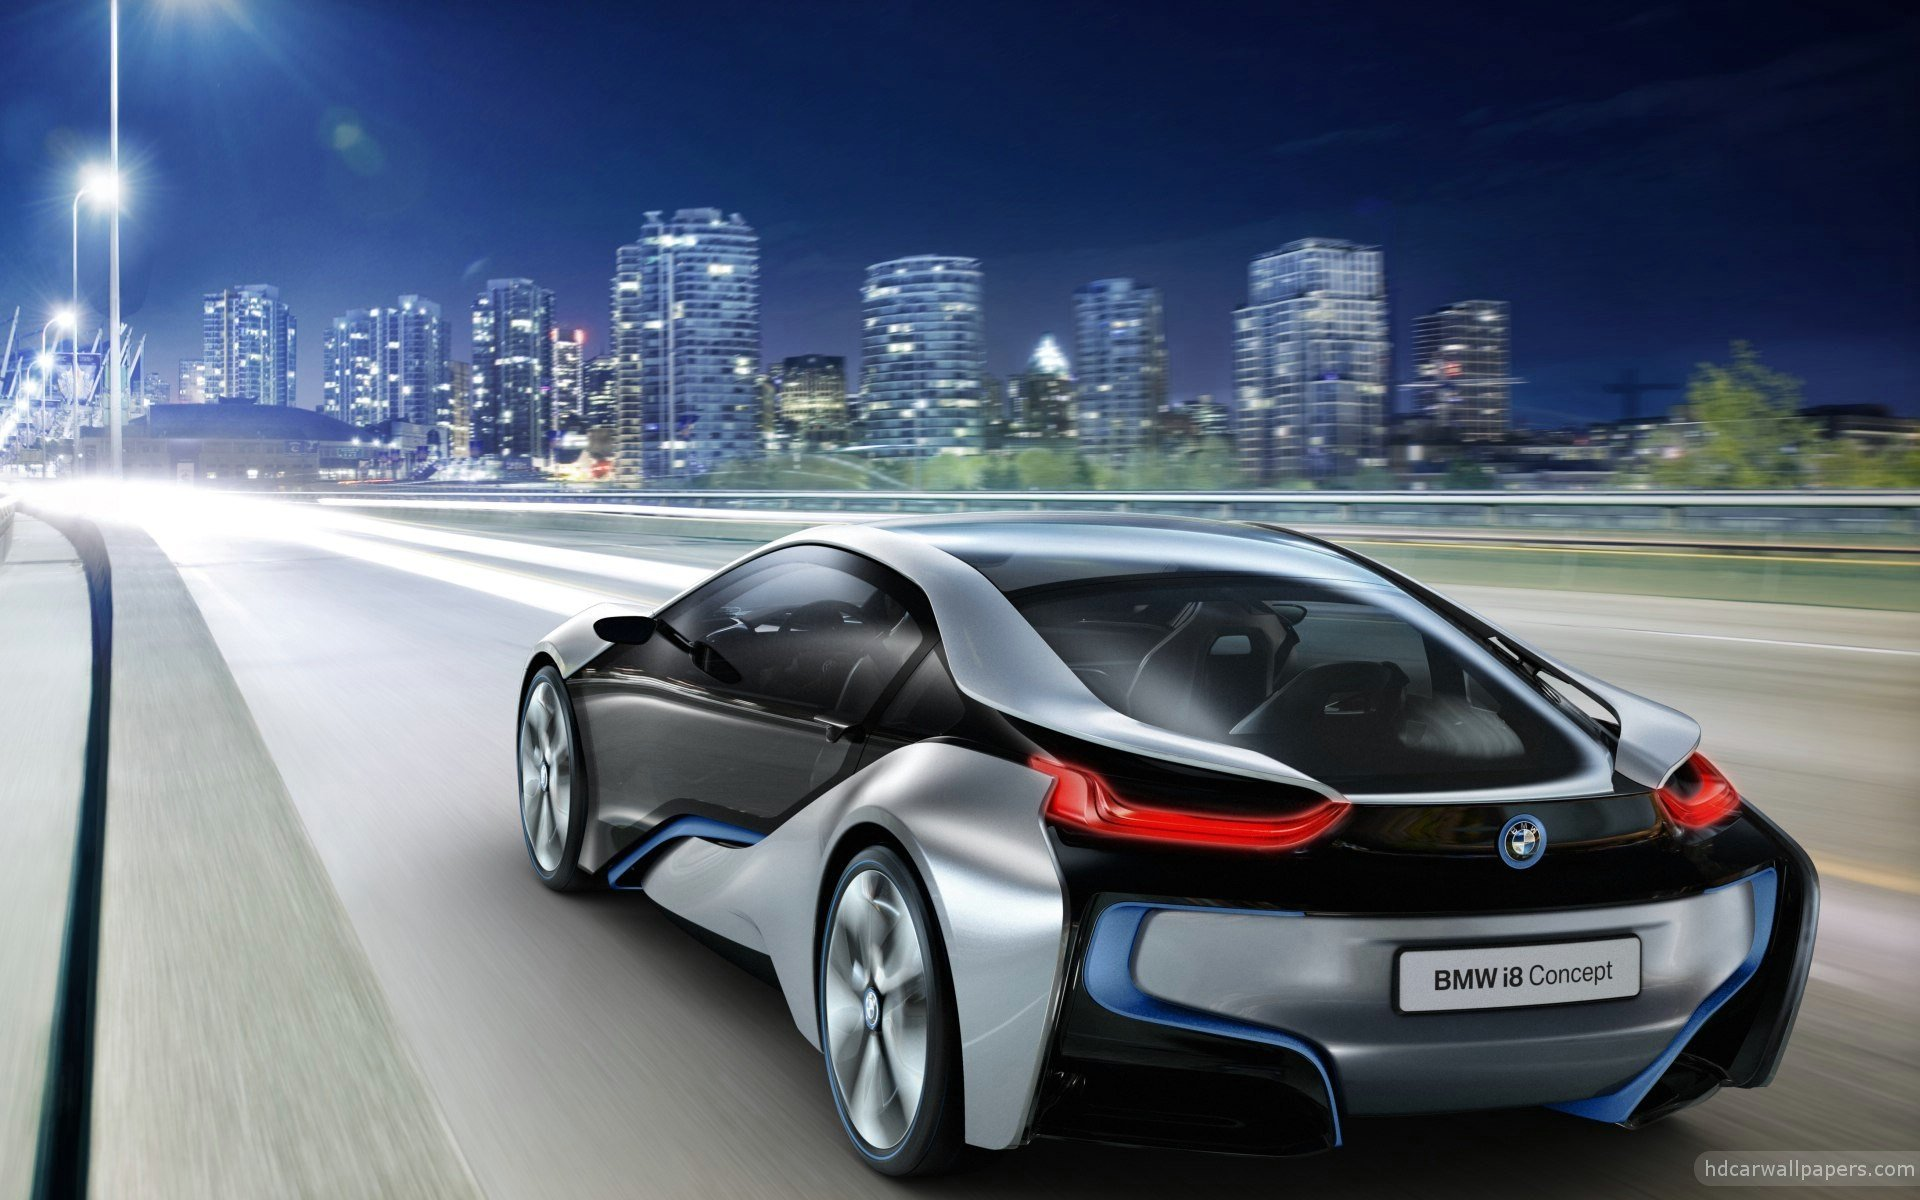 Latest 2012 Bmw I8 Concept 4 Wallpaper Hd Car Wallpapers Id 2156 Free Download